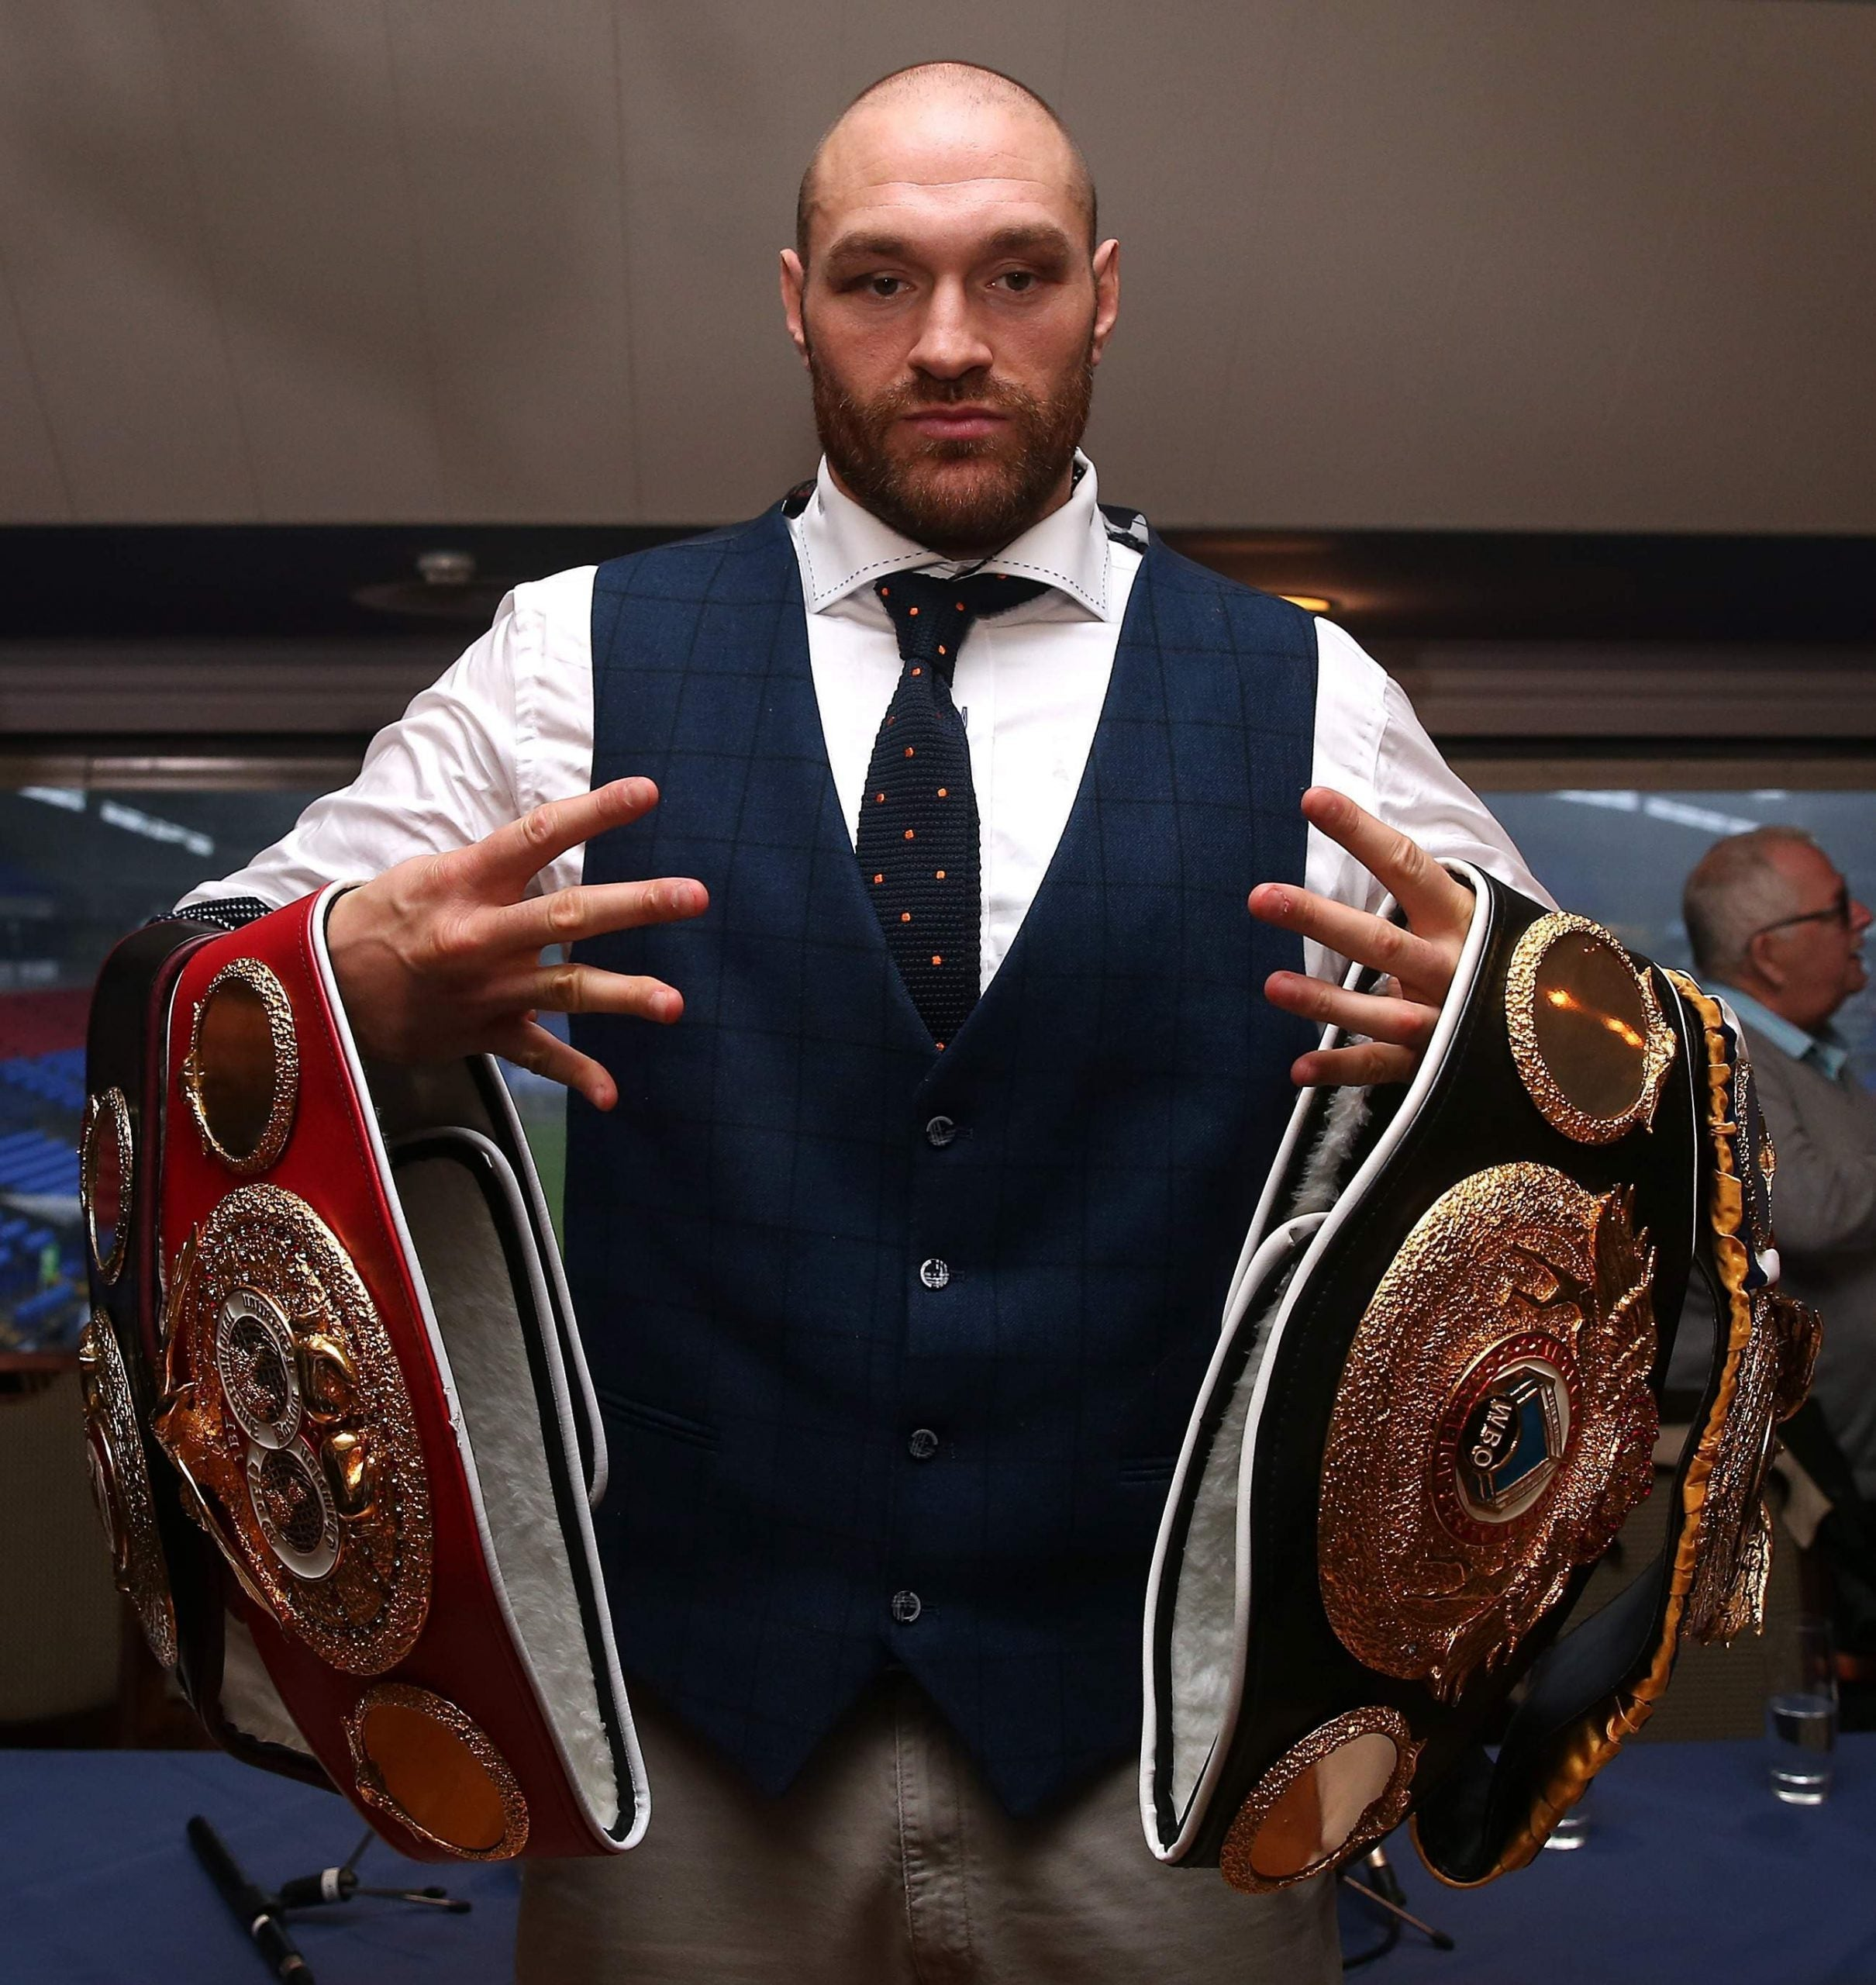 What does it say about the BBC's attitude to domestic violence that Tyson Fury is a candidate for Sports Personality of the Year?